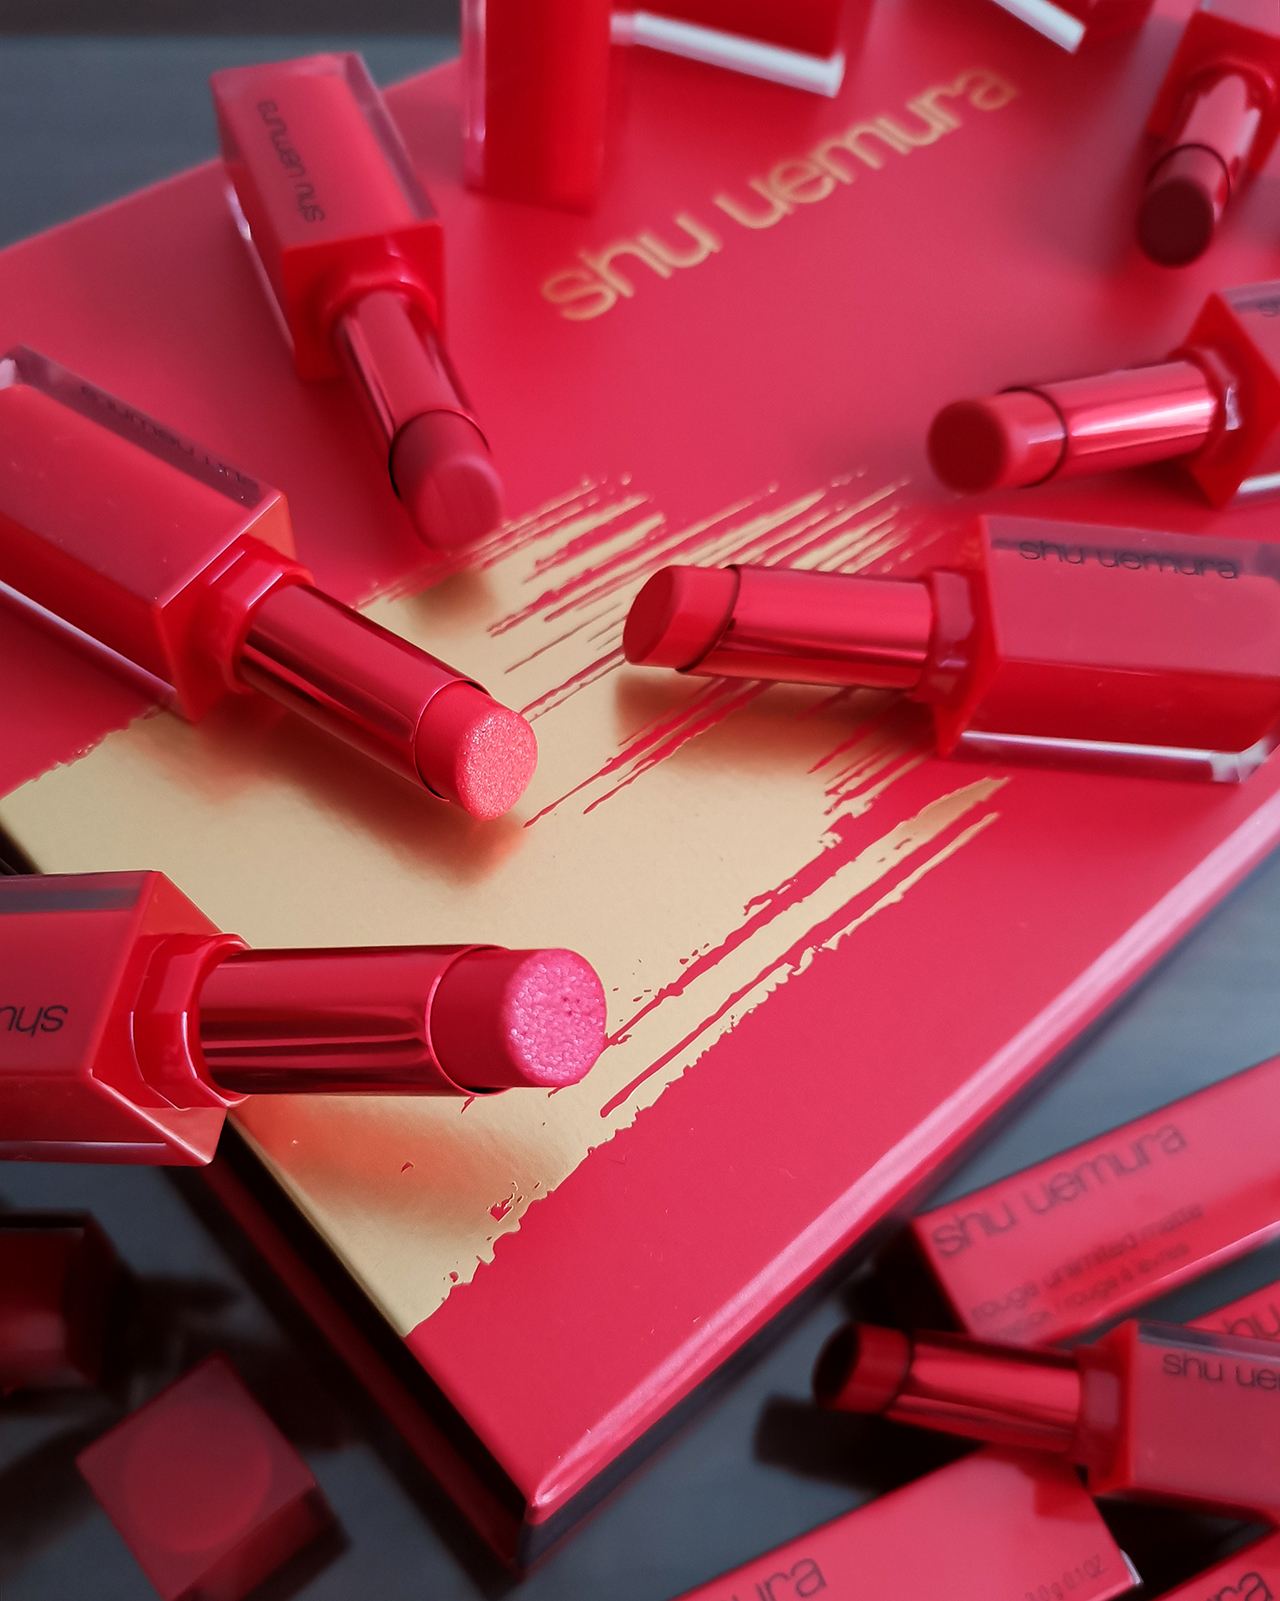 Shu Uemura Rouge Unlimited Flaming Reds Collection for Spring 2020